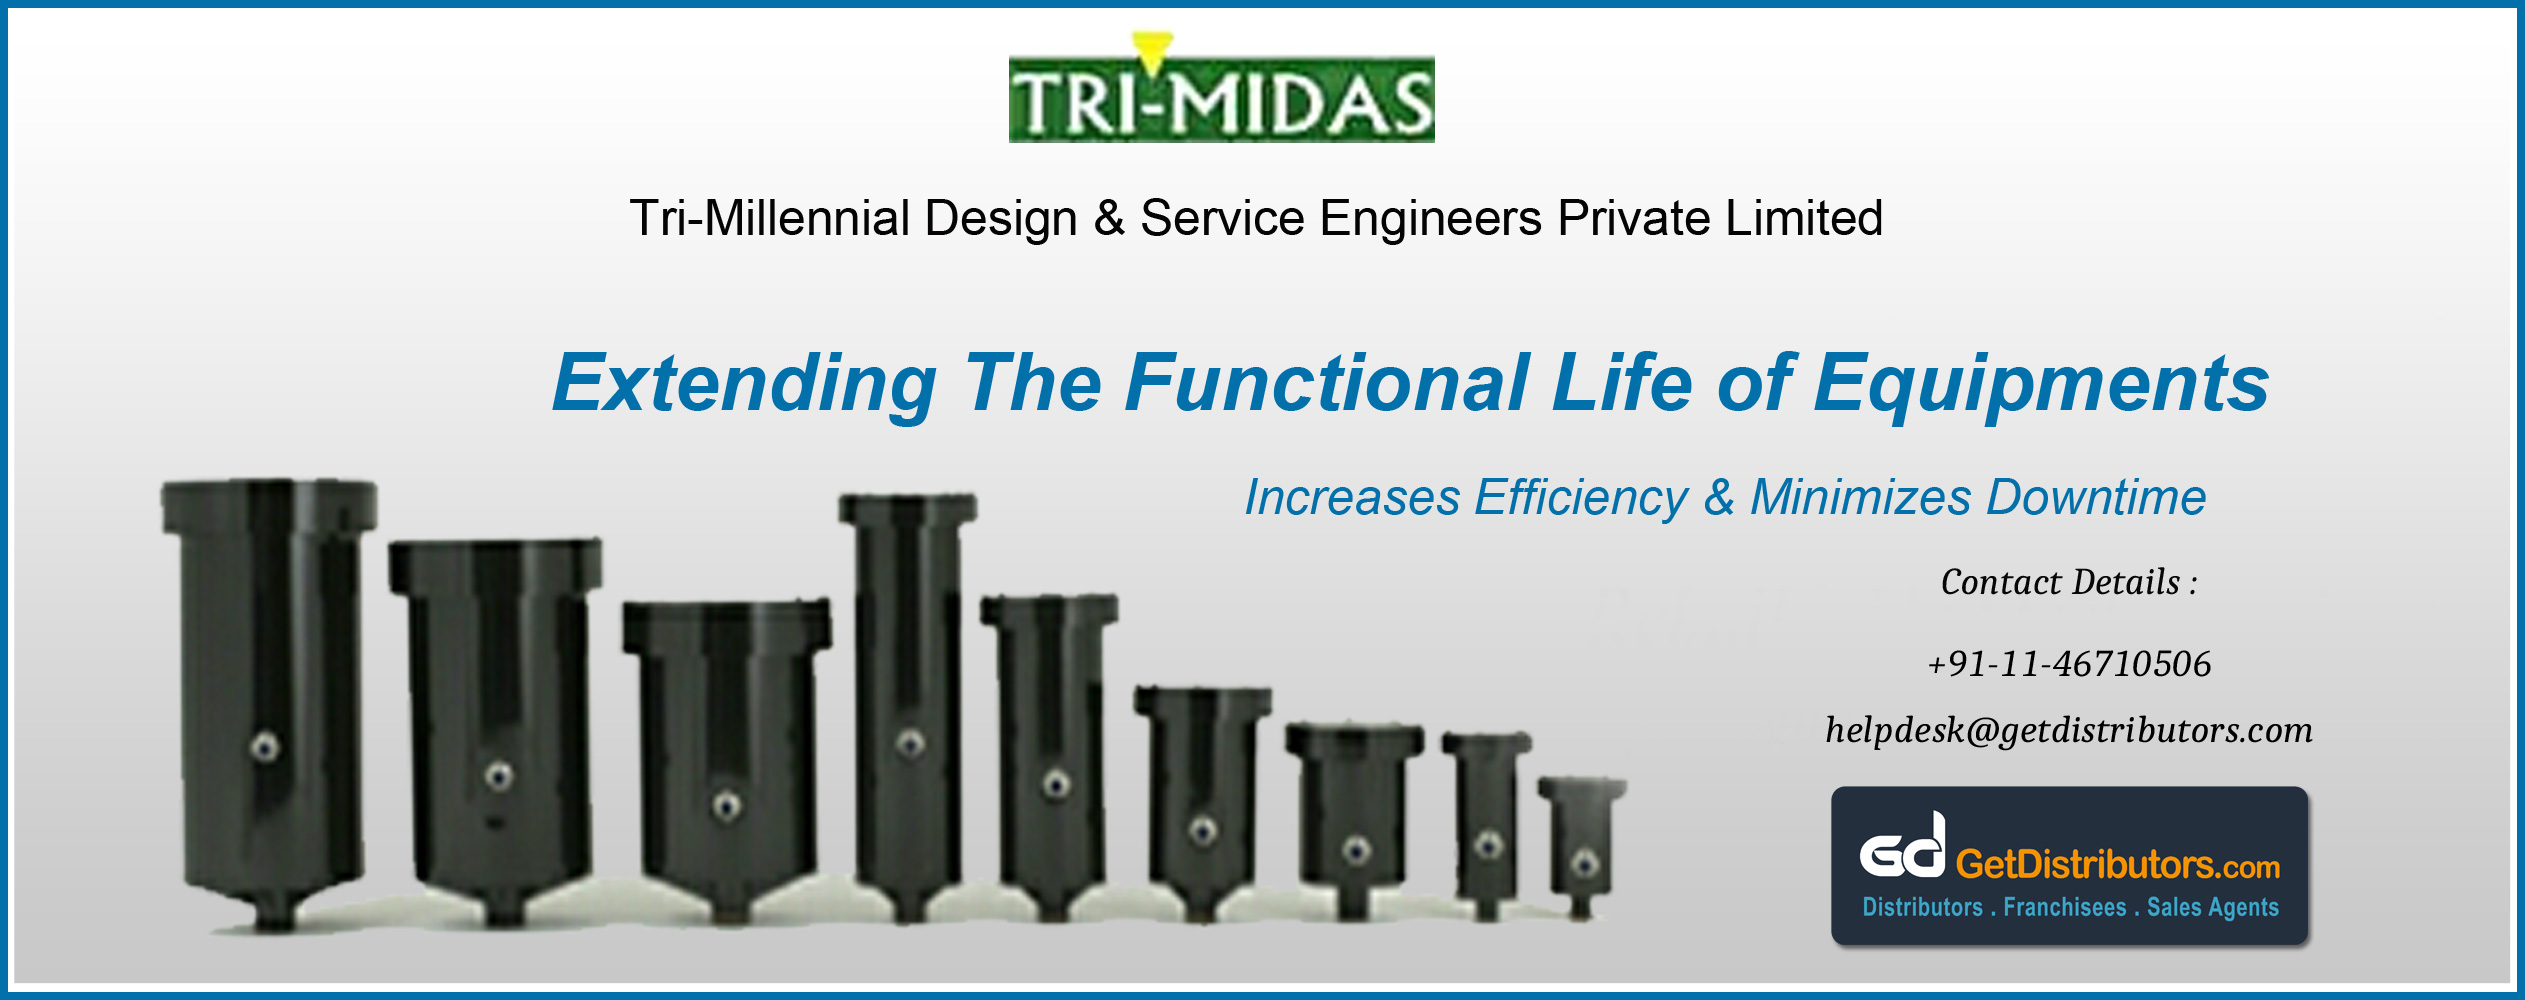 Extending The Functional Life Of Equipments